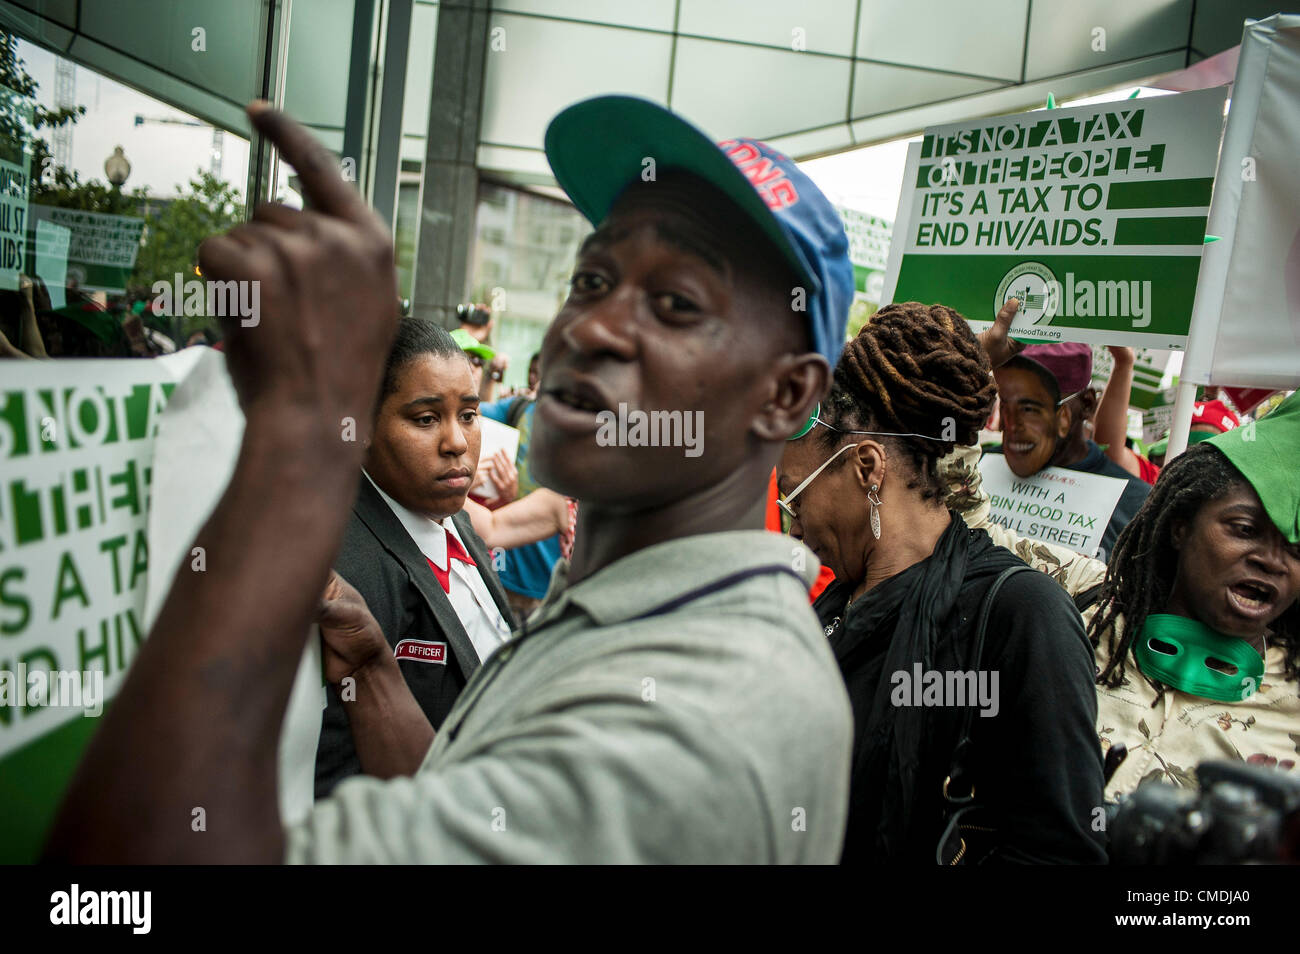 July 24, 2012 - U.S. - A security guard looks on as she guards the door at an office building that activists stopped - Stock Image